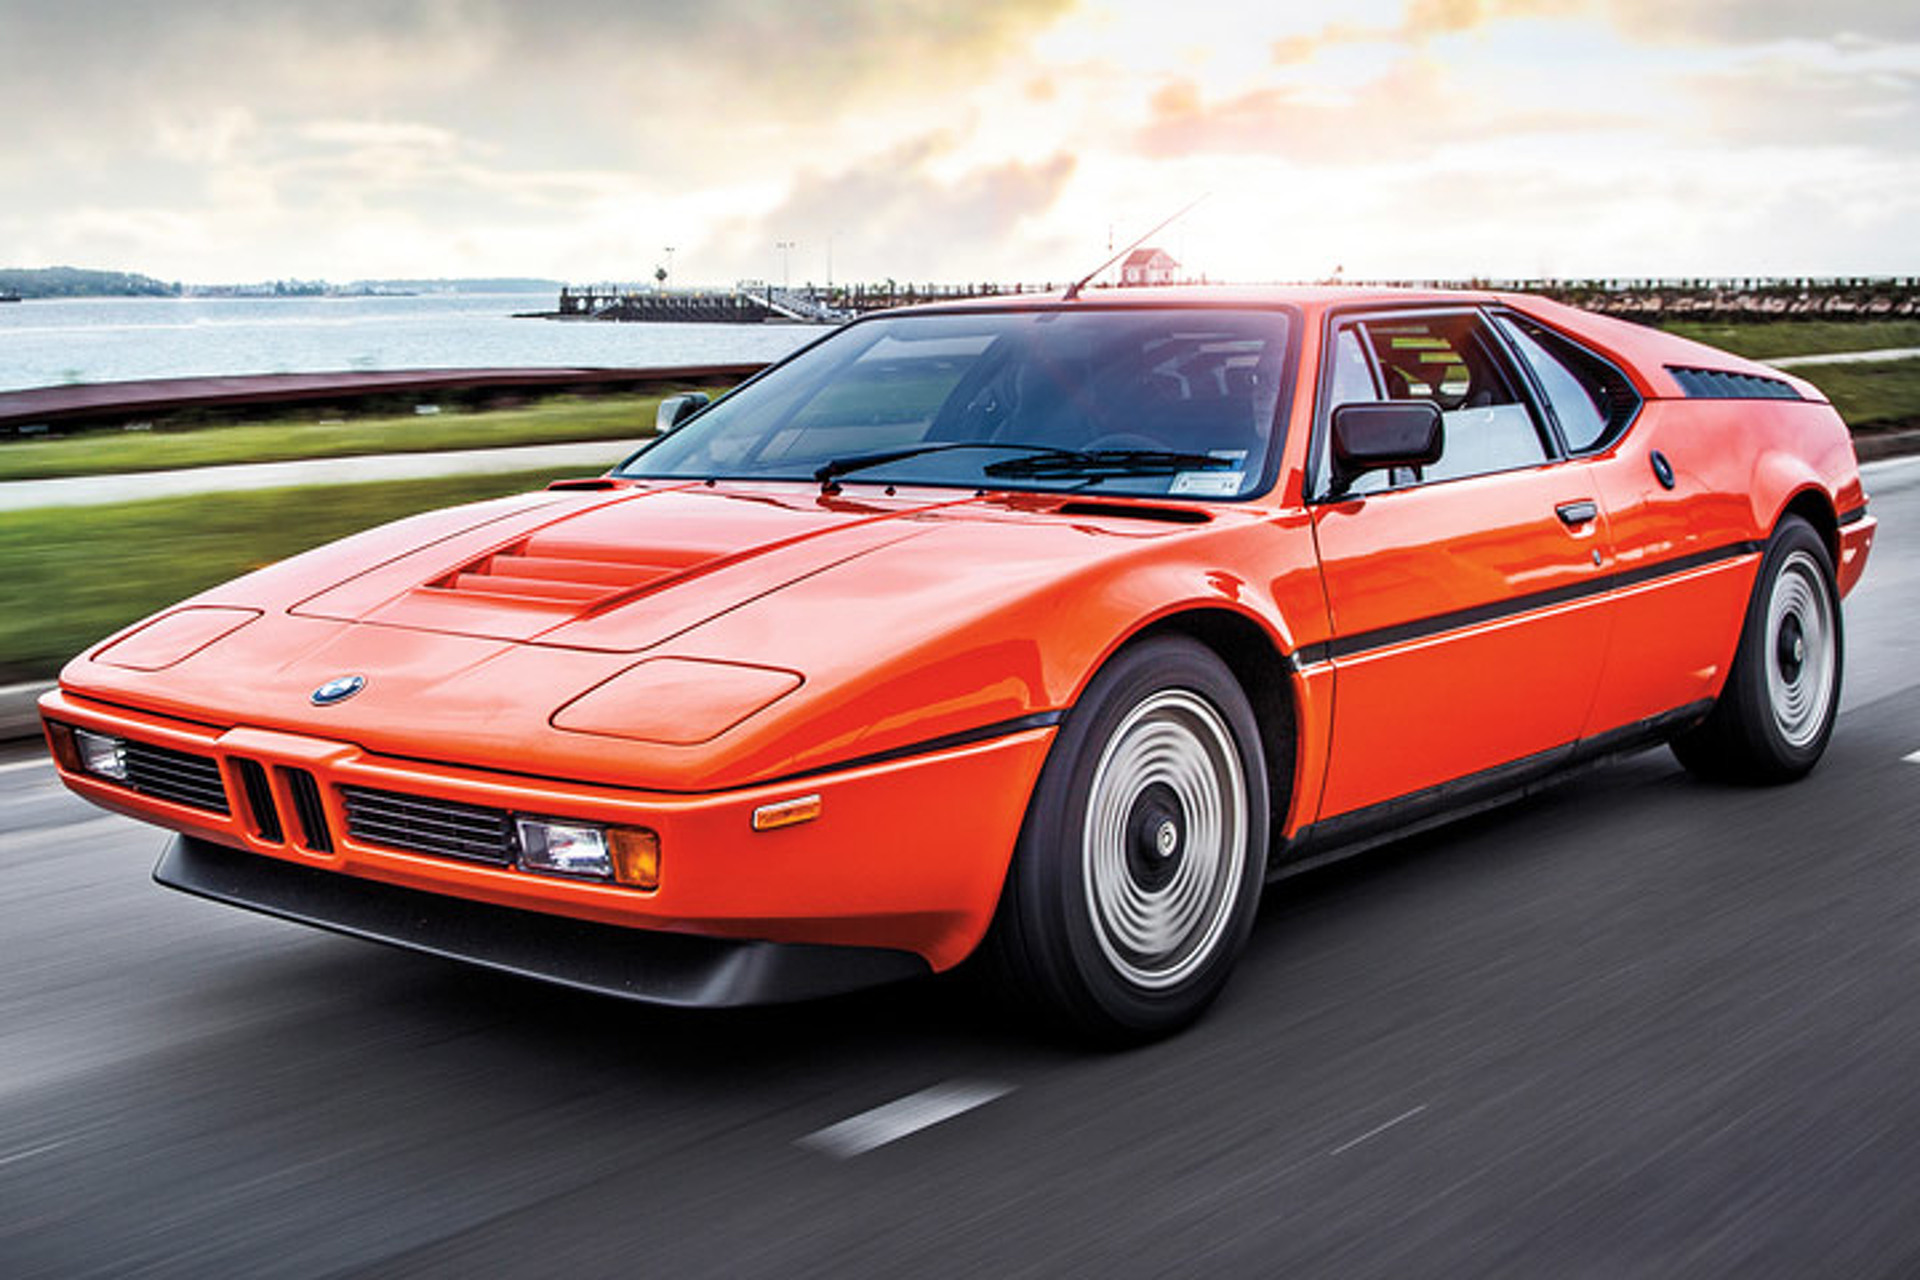 Owning the Supercar From Your Childhood Isn't Out of the Question